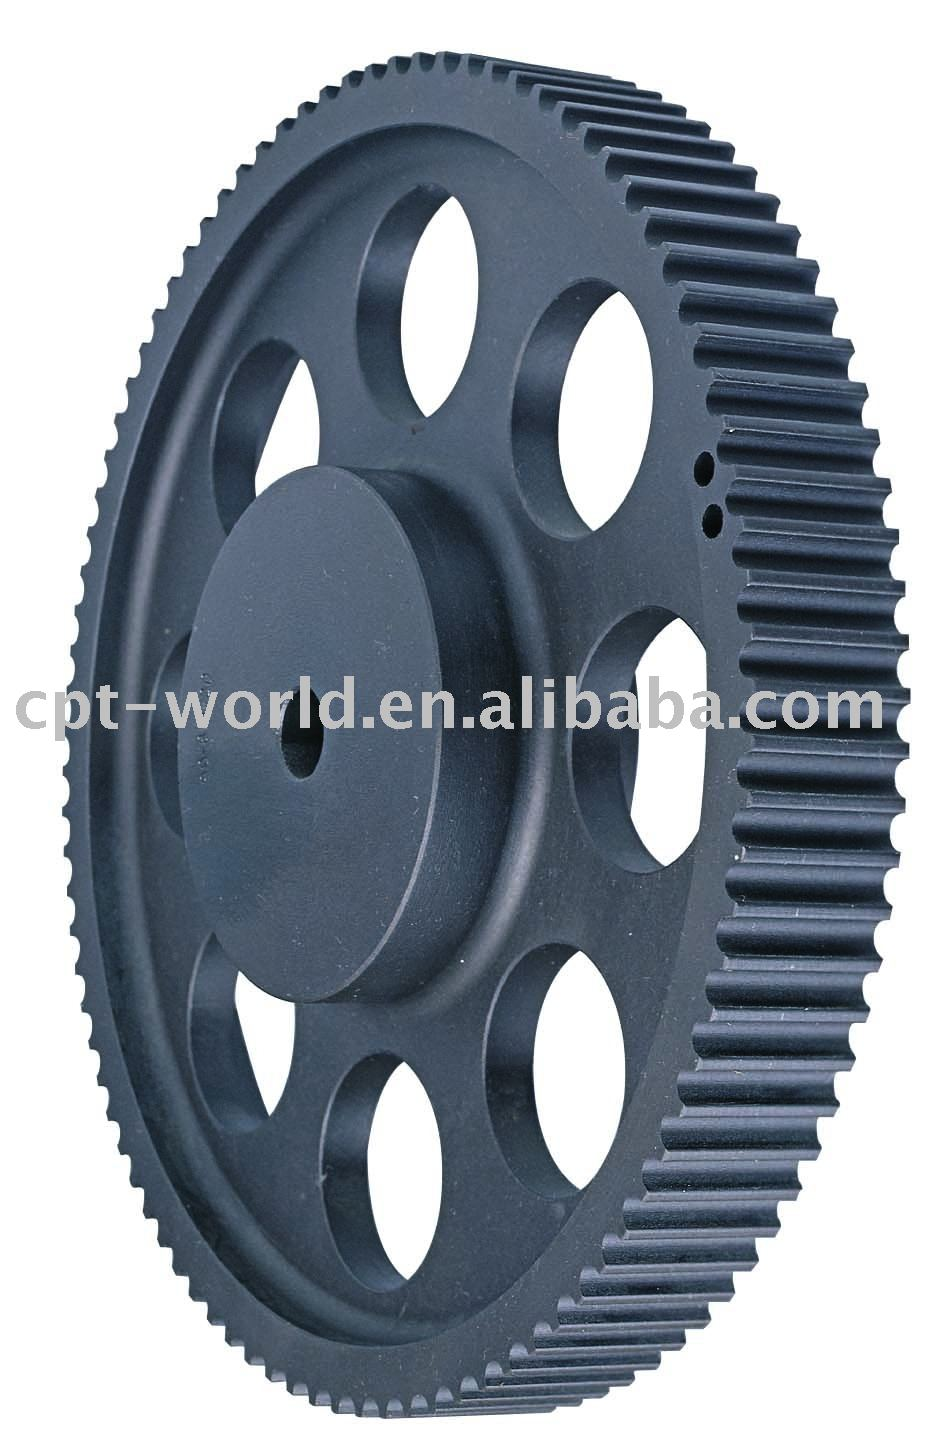 Timing Pulley / Synchronous pulley / Synchronized Pulley / Timing Belt pulley / - T/AT - AT10-31